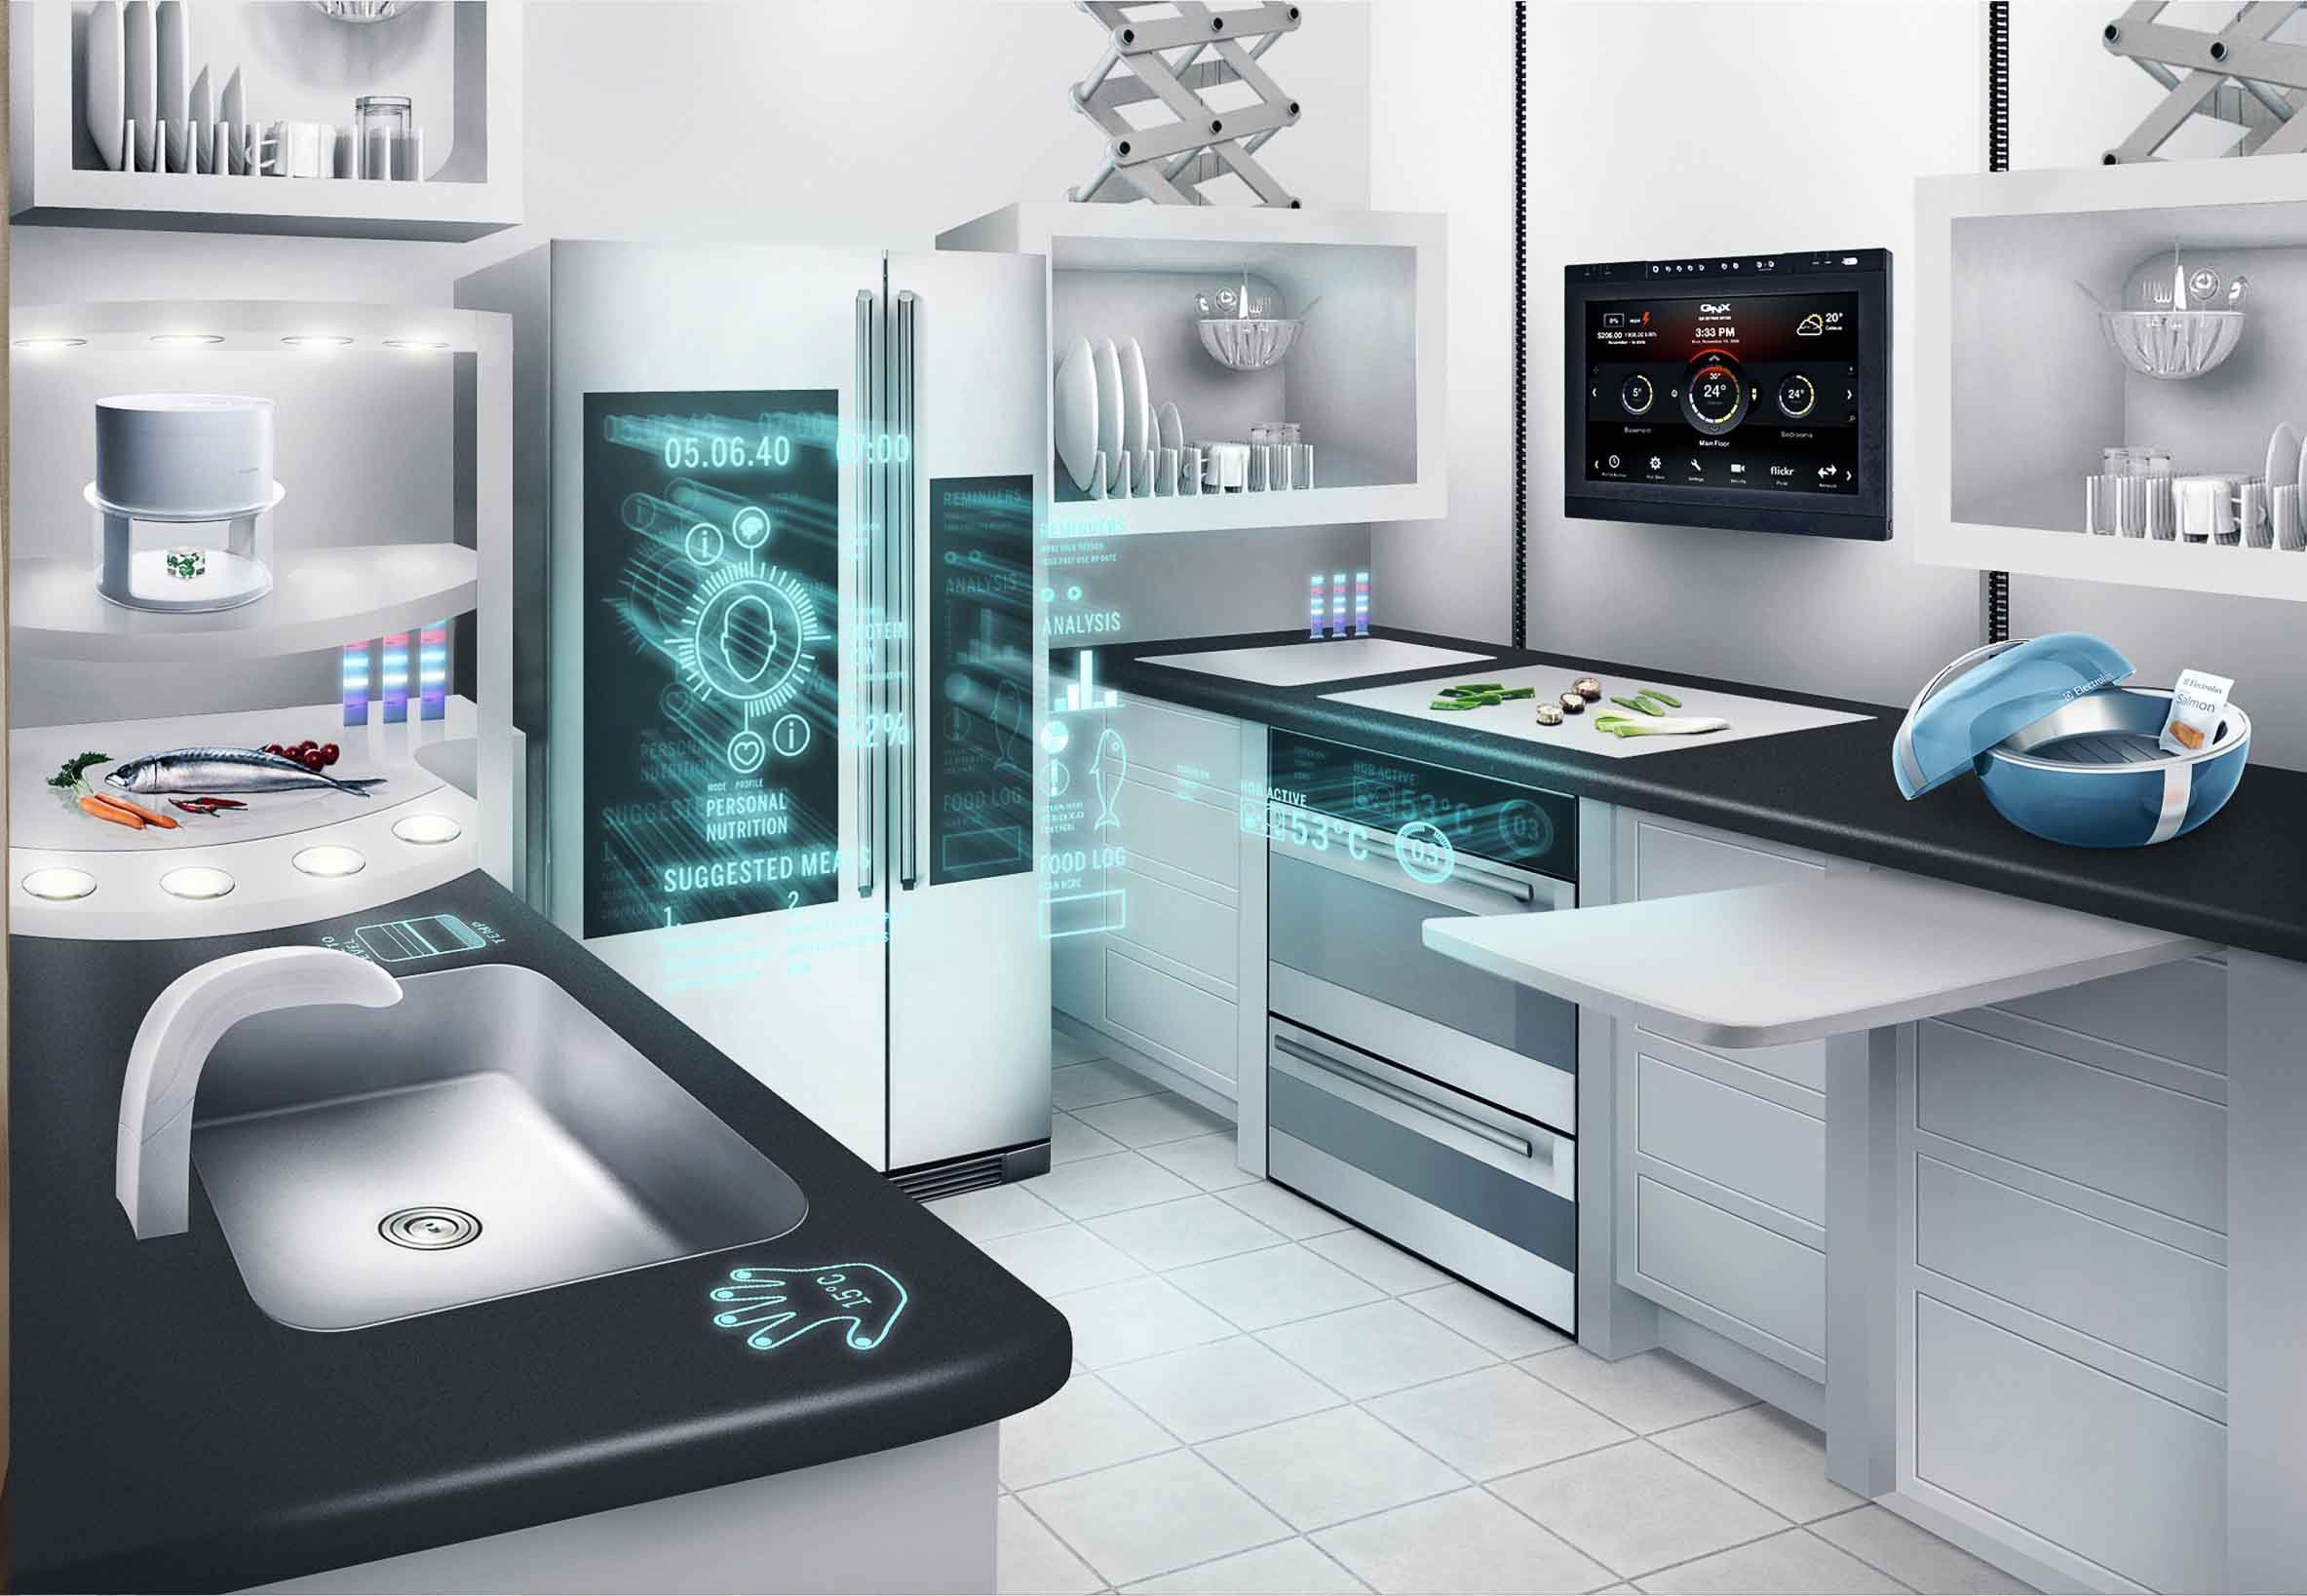 Cool Kitchen Appliances That Make Your Life Easier Electronics Go Green